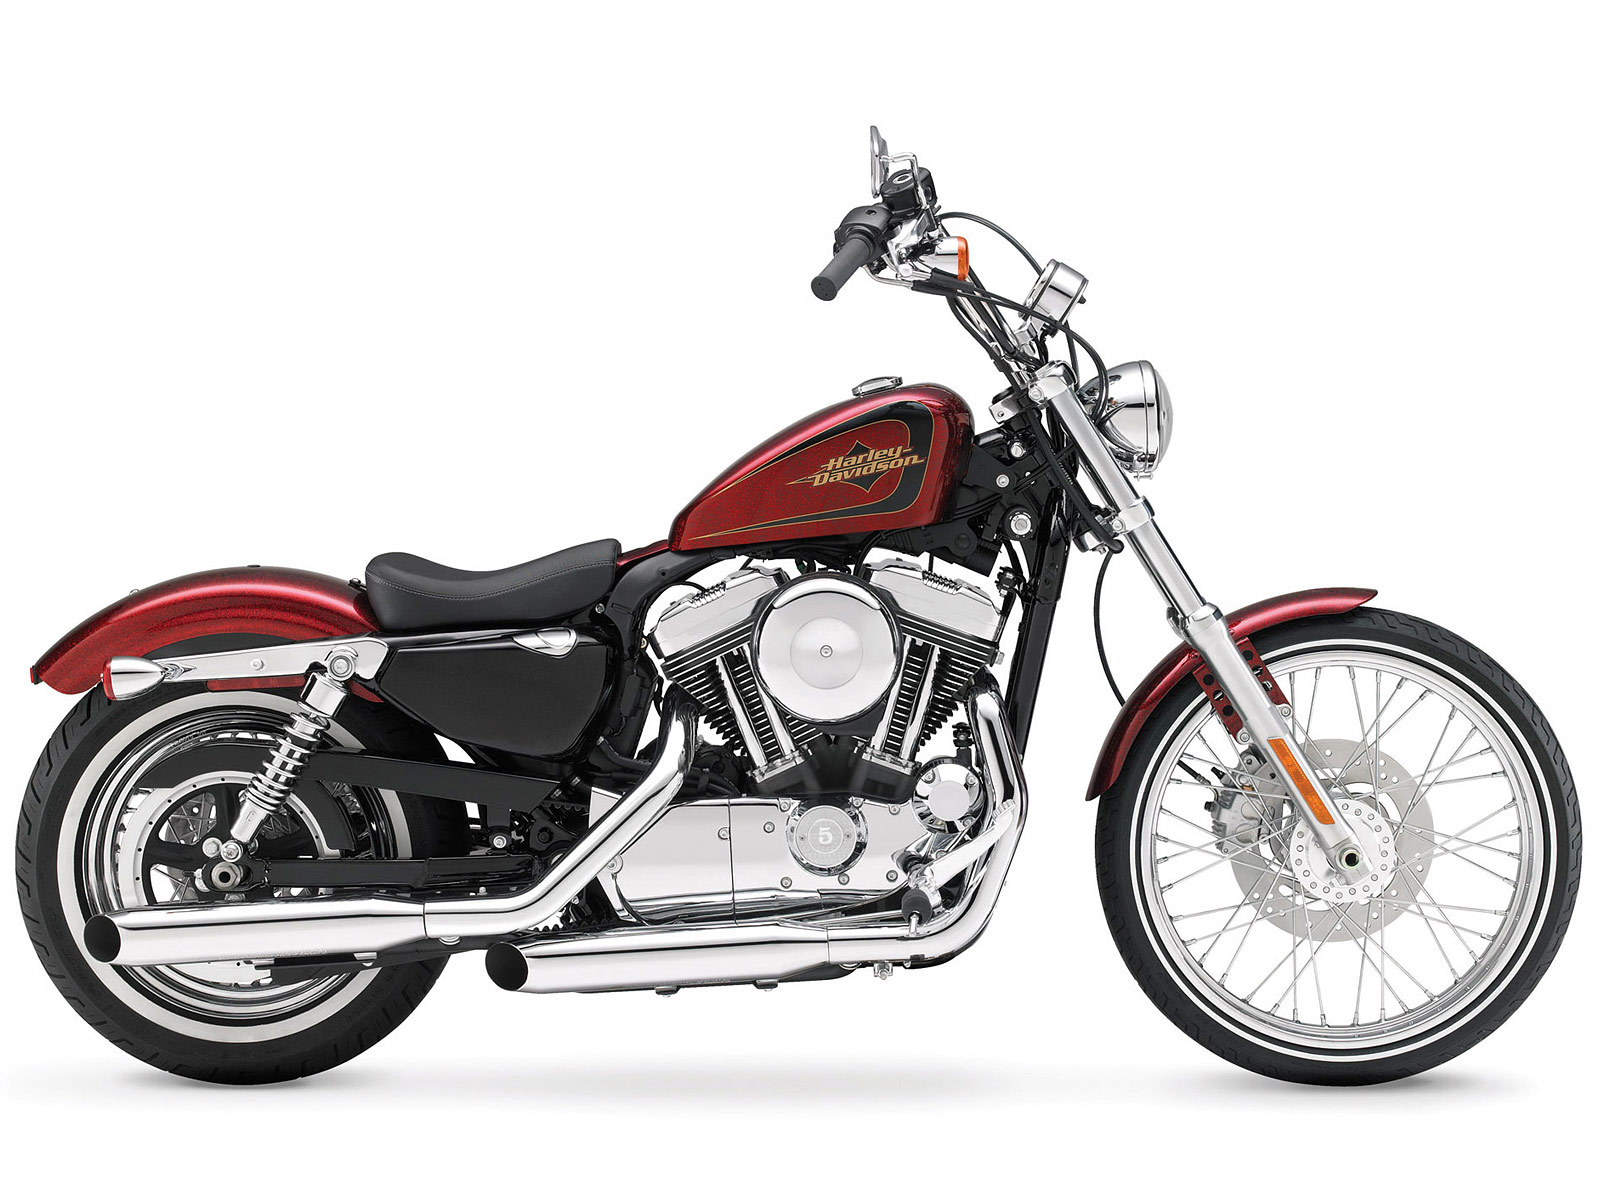 Harley Davidson 2012: 2012 XL1200V Seventy Two Pictures, Review, Specifications